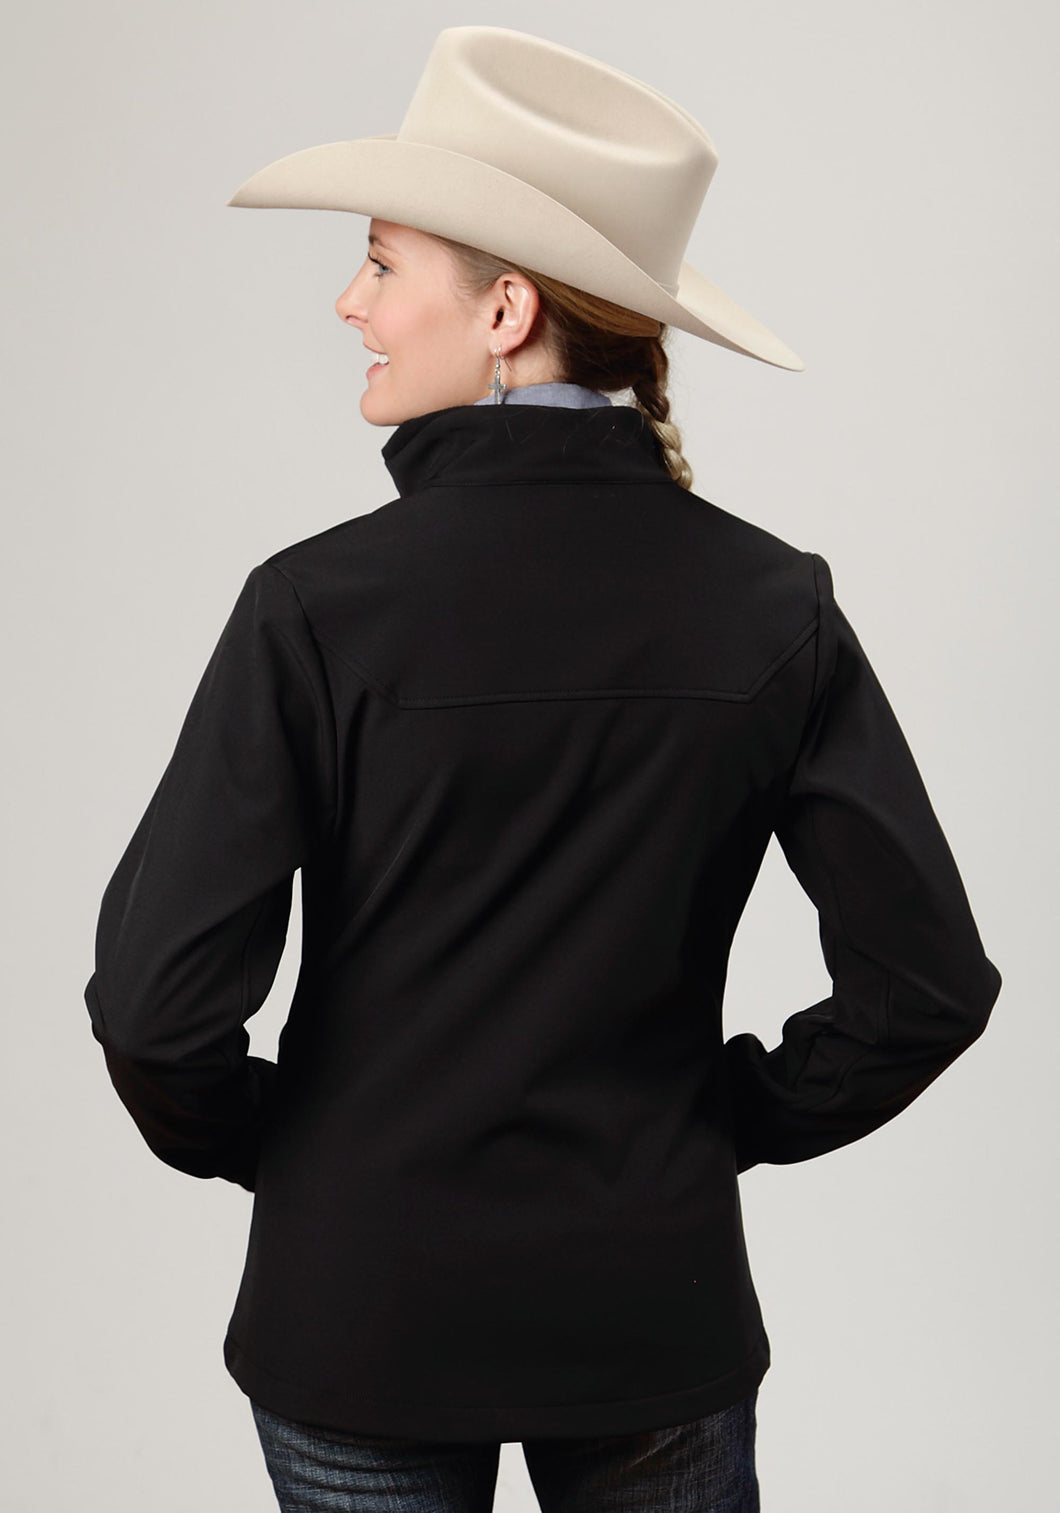 Roper Outerwear- Ladies Outer Womens Jacket 0699c1 Black W Black